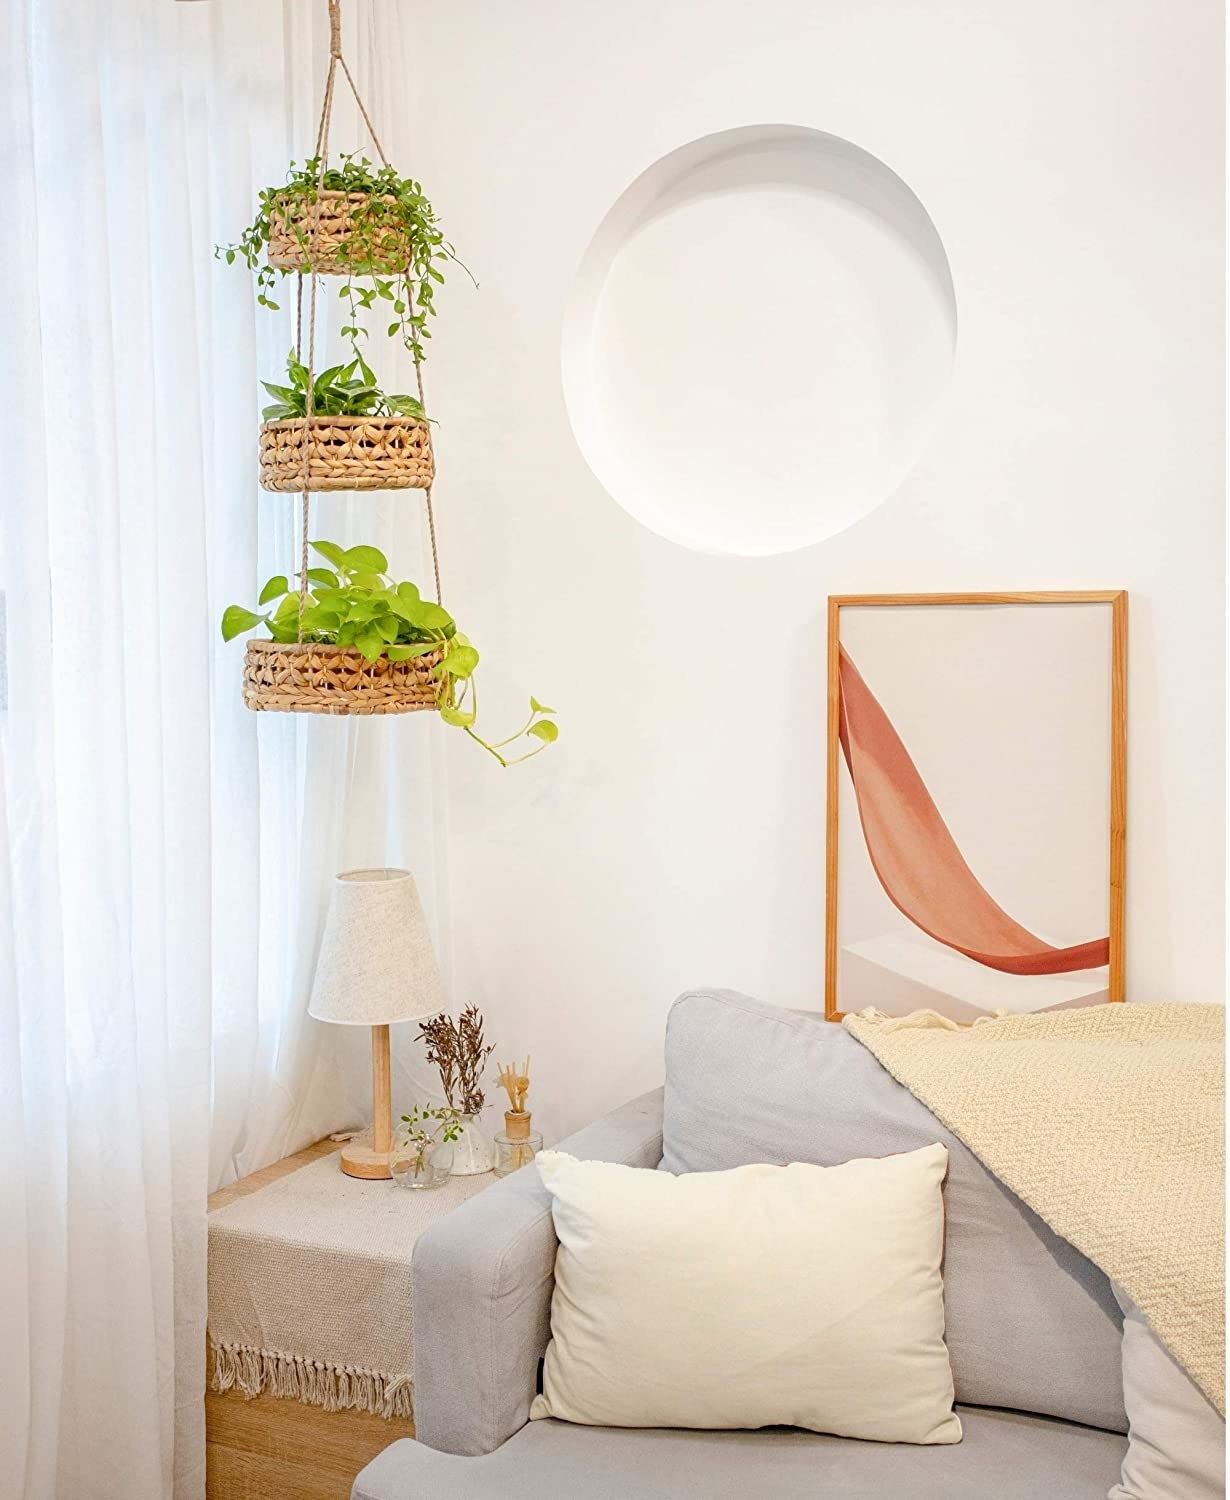 Three-tiered hanging basket filled with plants in living room